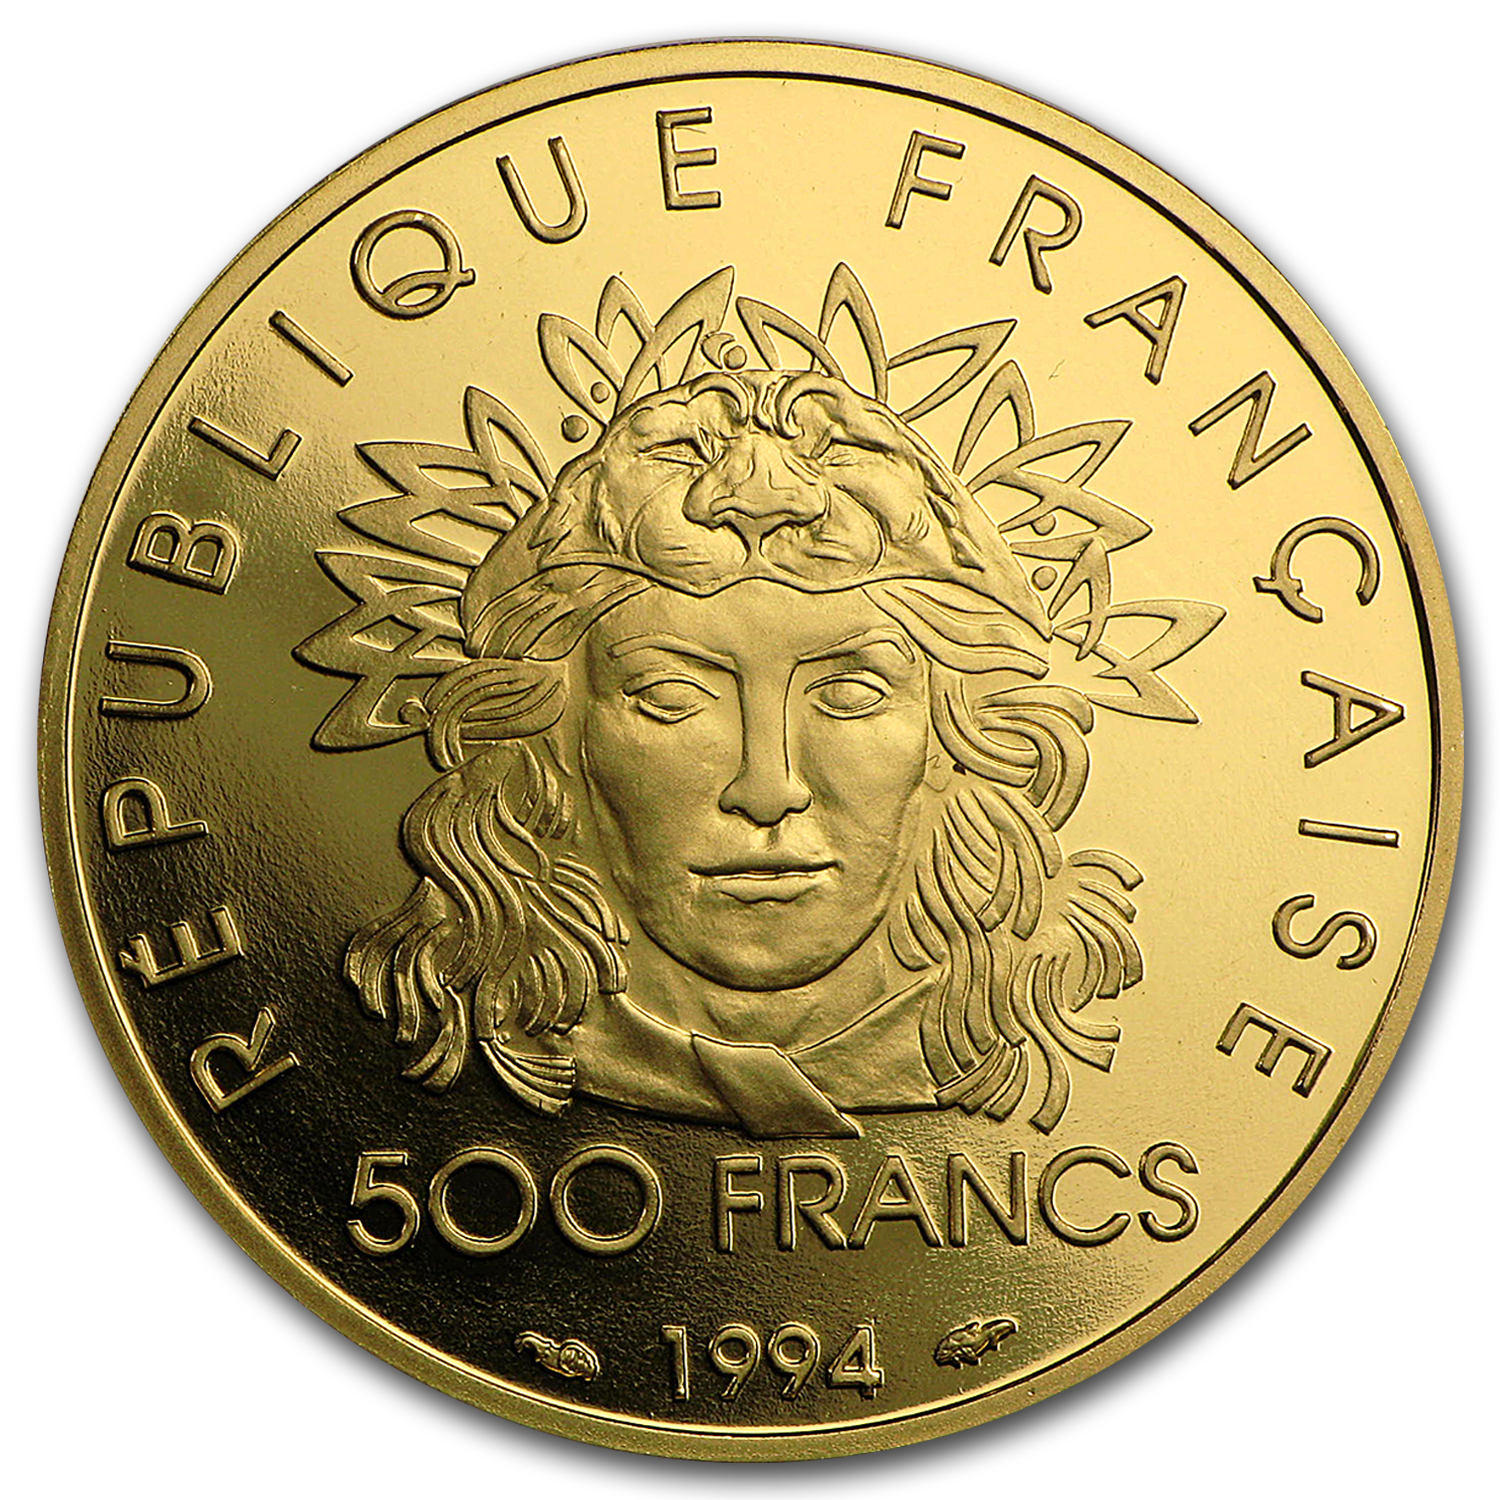 1994 France Proof Gold 500 Francs Olympics